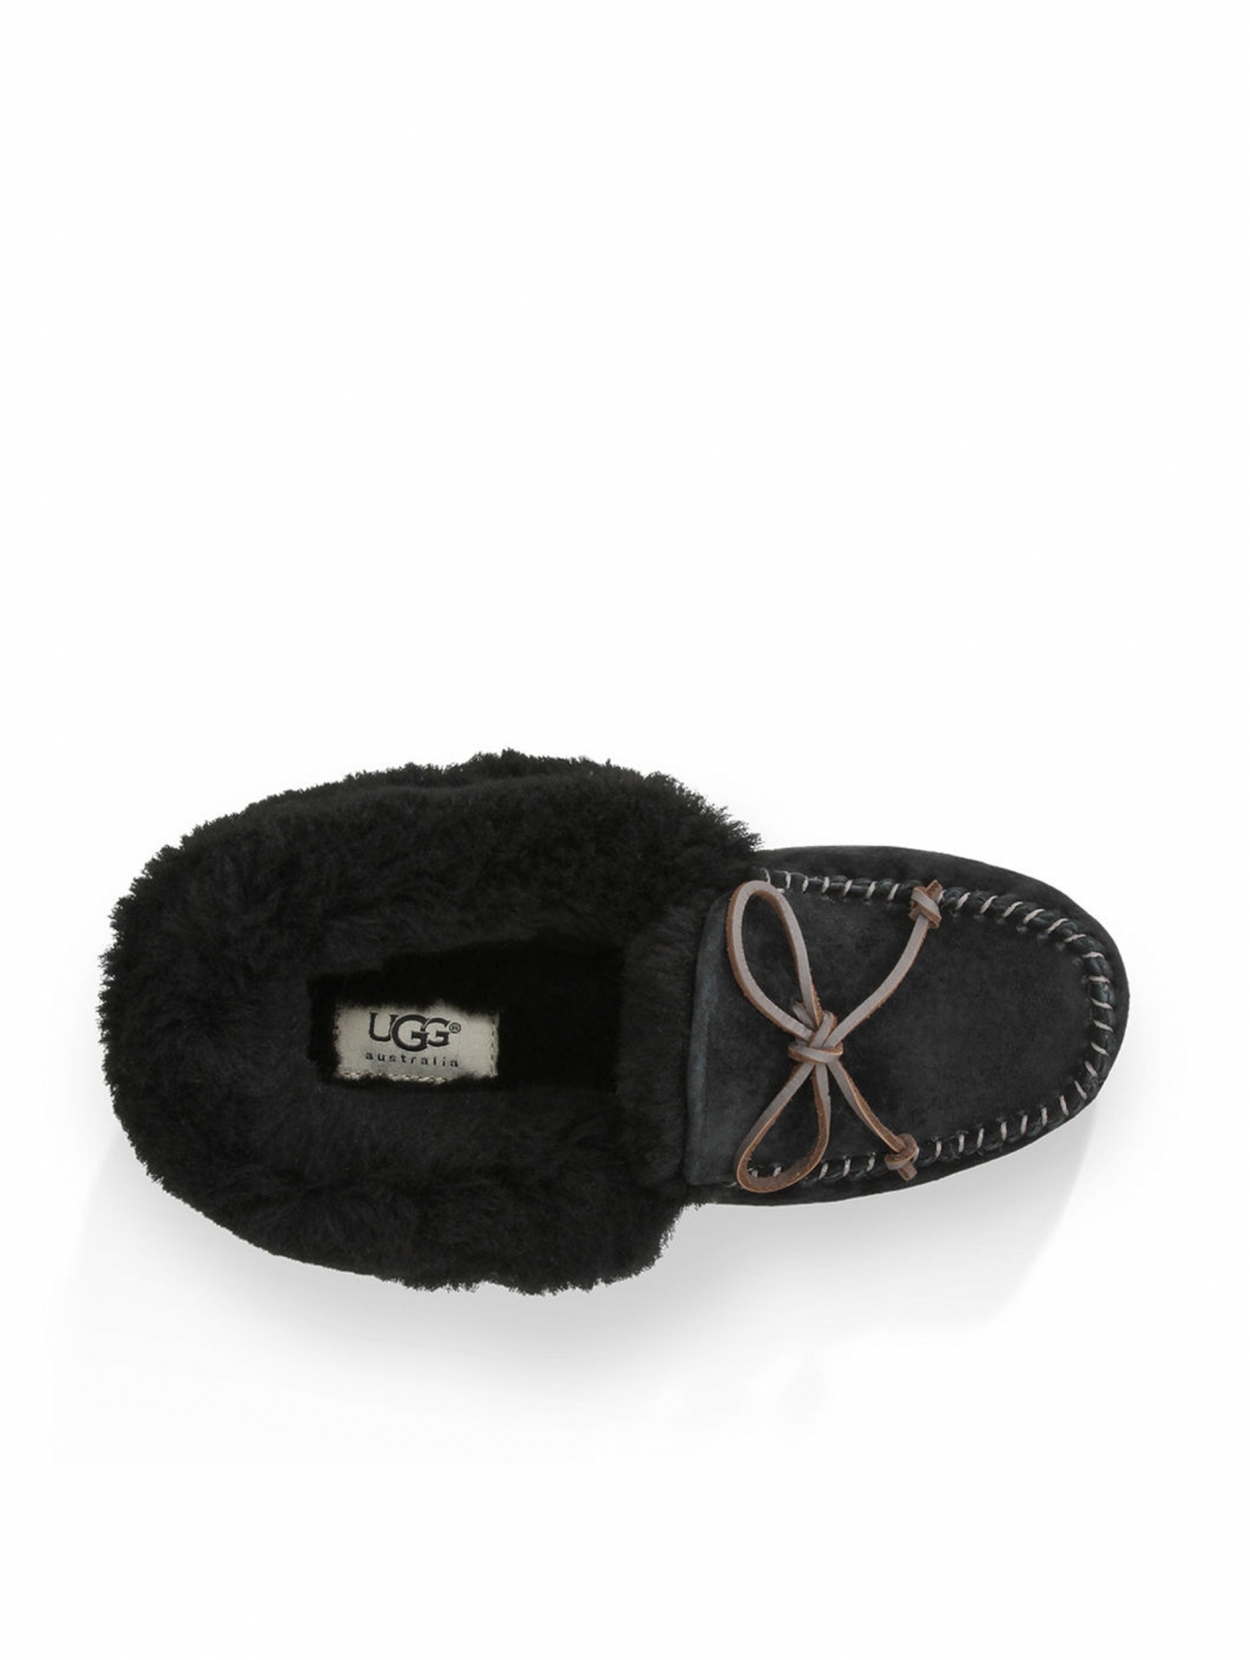 ugg slippers dames zwart